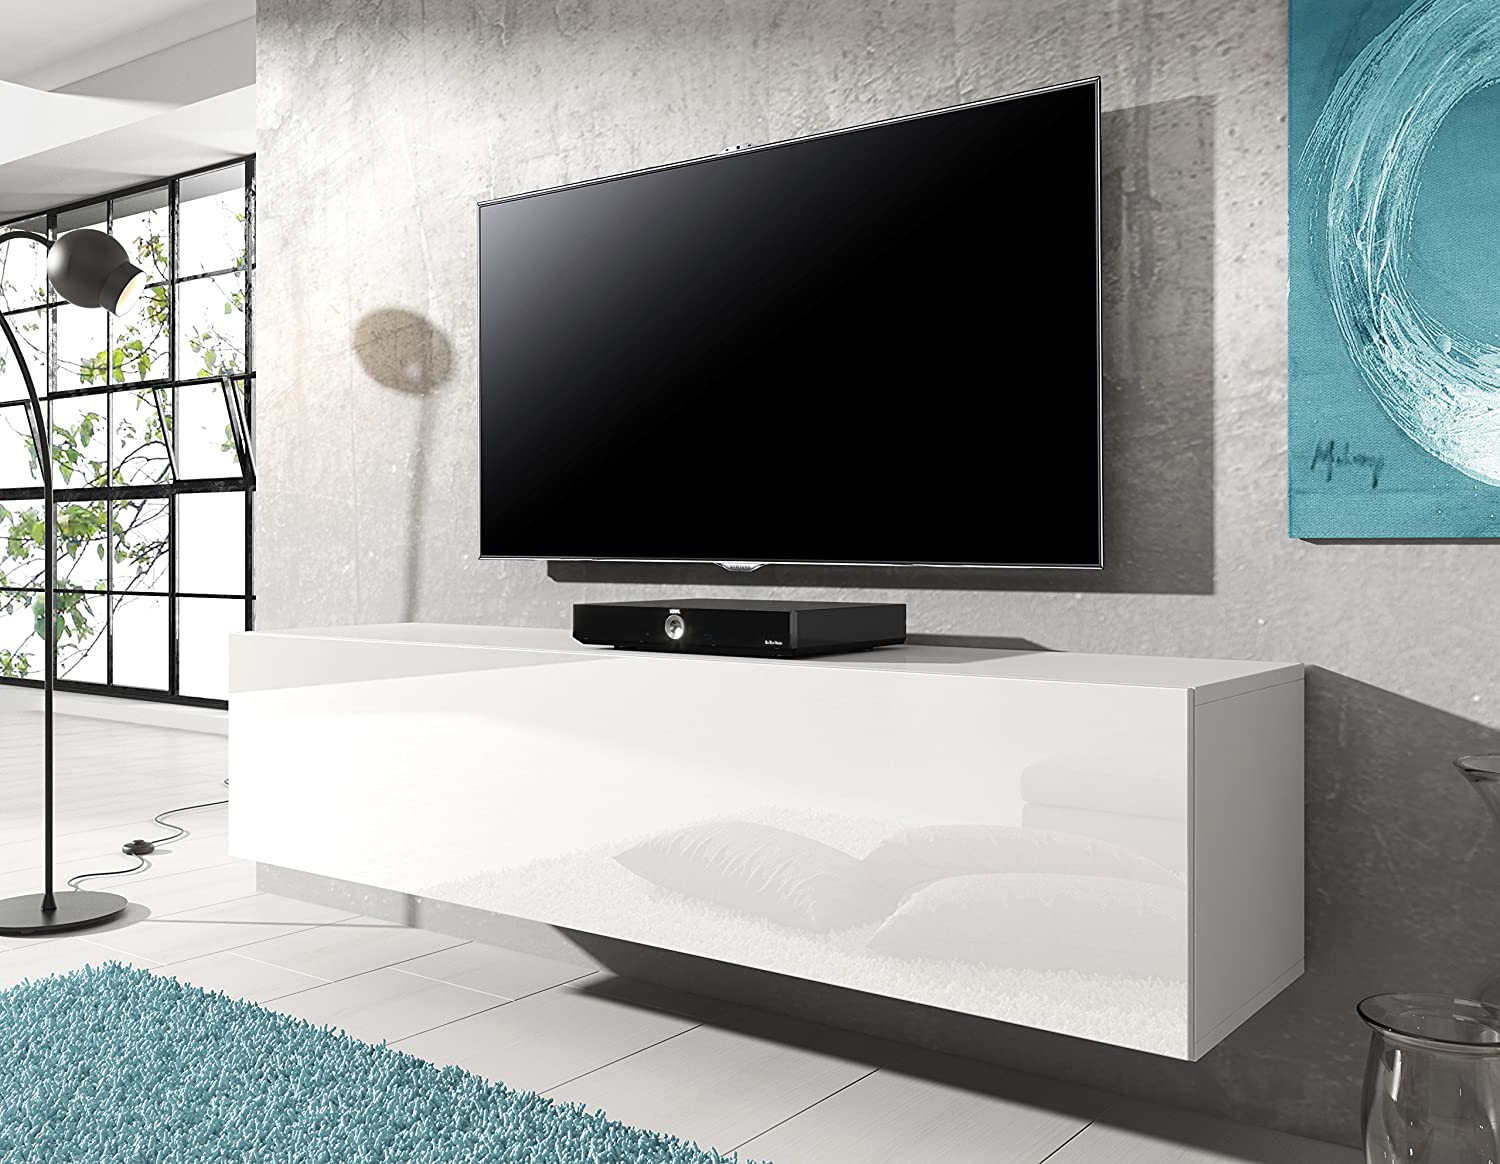 Meuble Tv Flottant - Meuble Tv Suspendu Rocco 140 Cm Blanc Mat Frontal Avec Brillant [mjhdah]https://fr.imagineoutlet.com/Upload/Thumbnail/Meubles-haut-de-gamme-en-chene-design-allemand-20.jpg